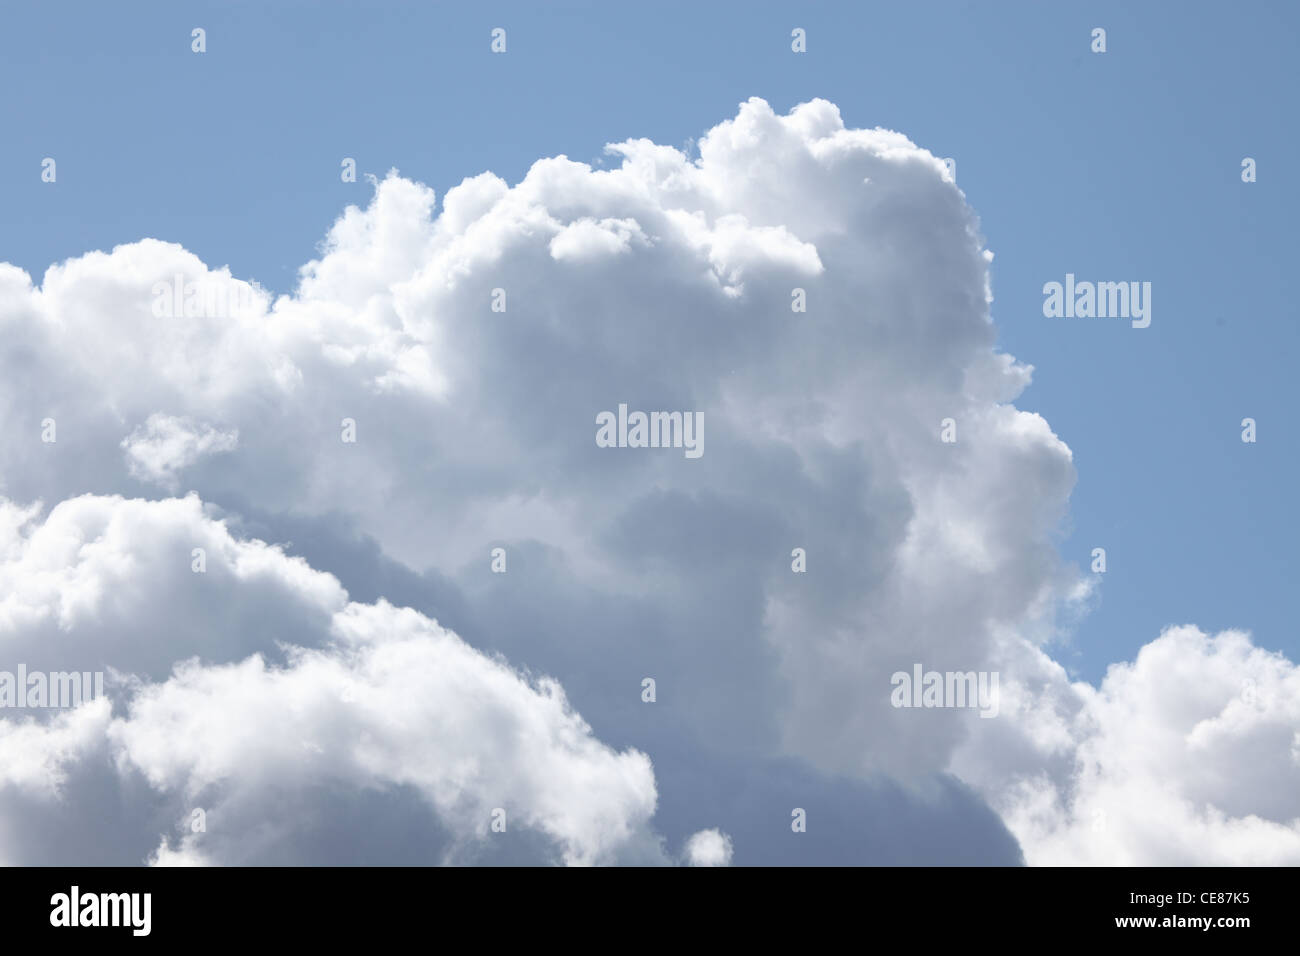 cumulonimbus clouds in late summer getting ready for a heavy shower - Stock Image